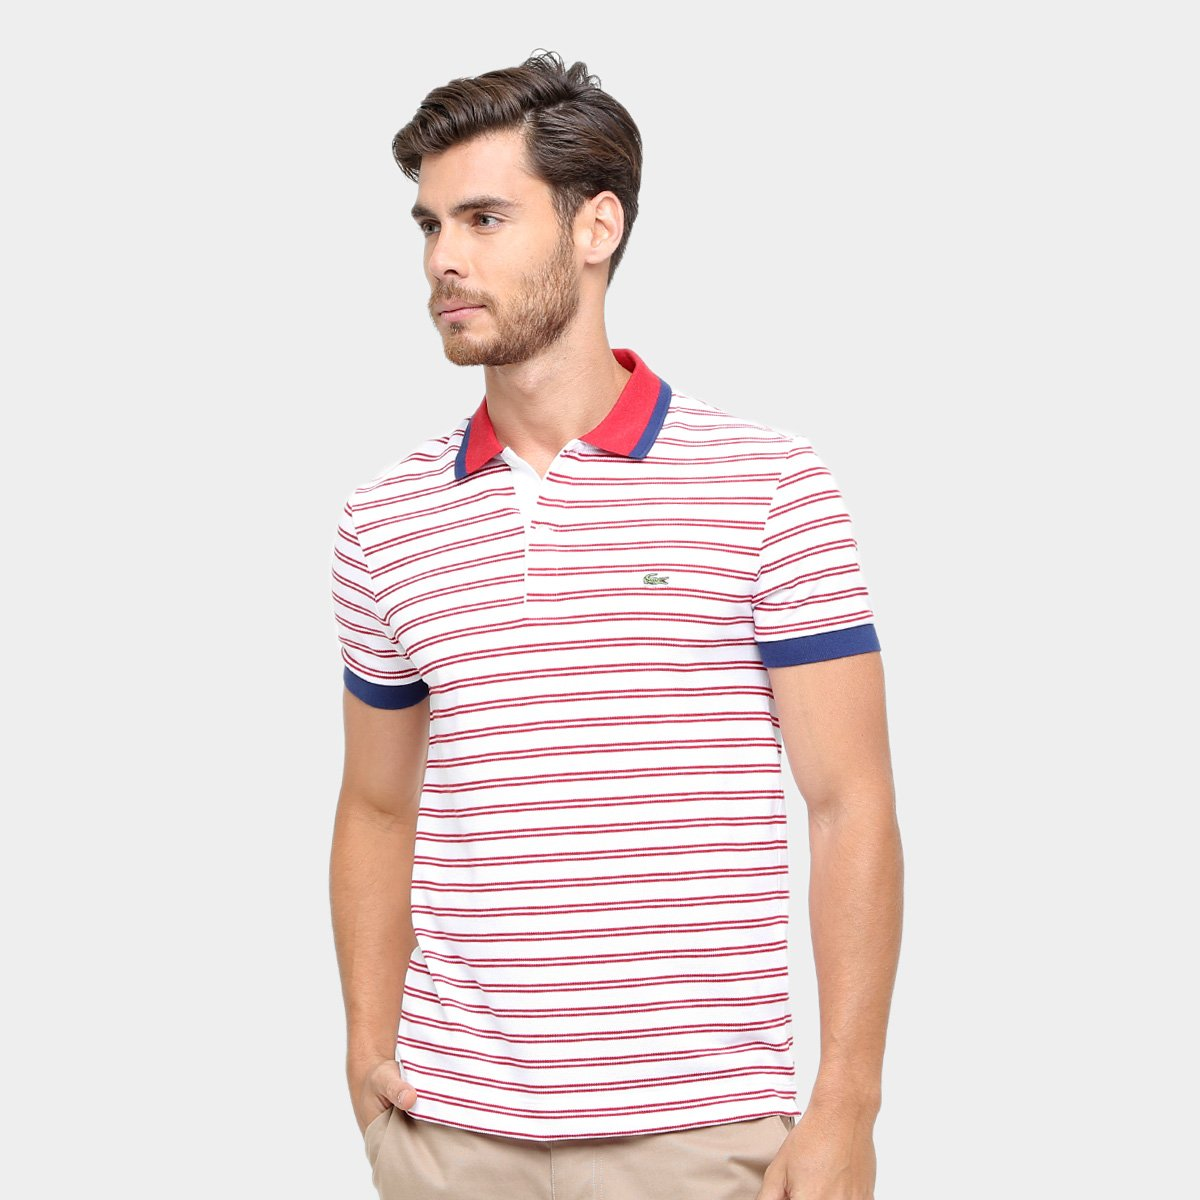 6efb2463ce Camisa Polo Lacoste Piquet Fit Listras Color Masculina